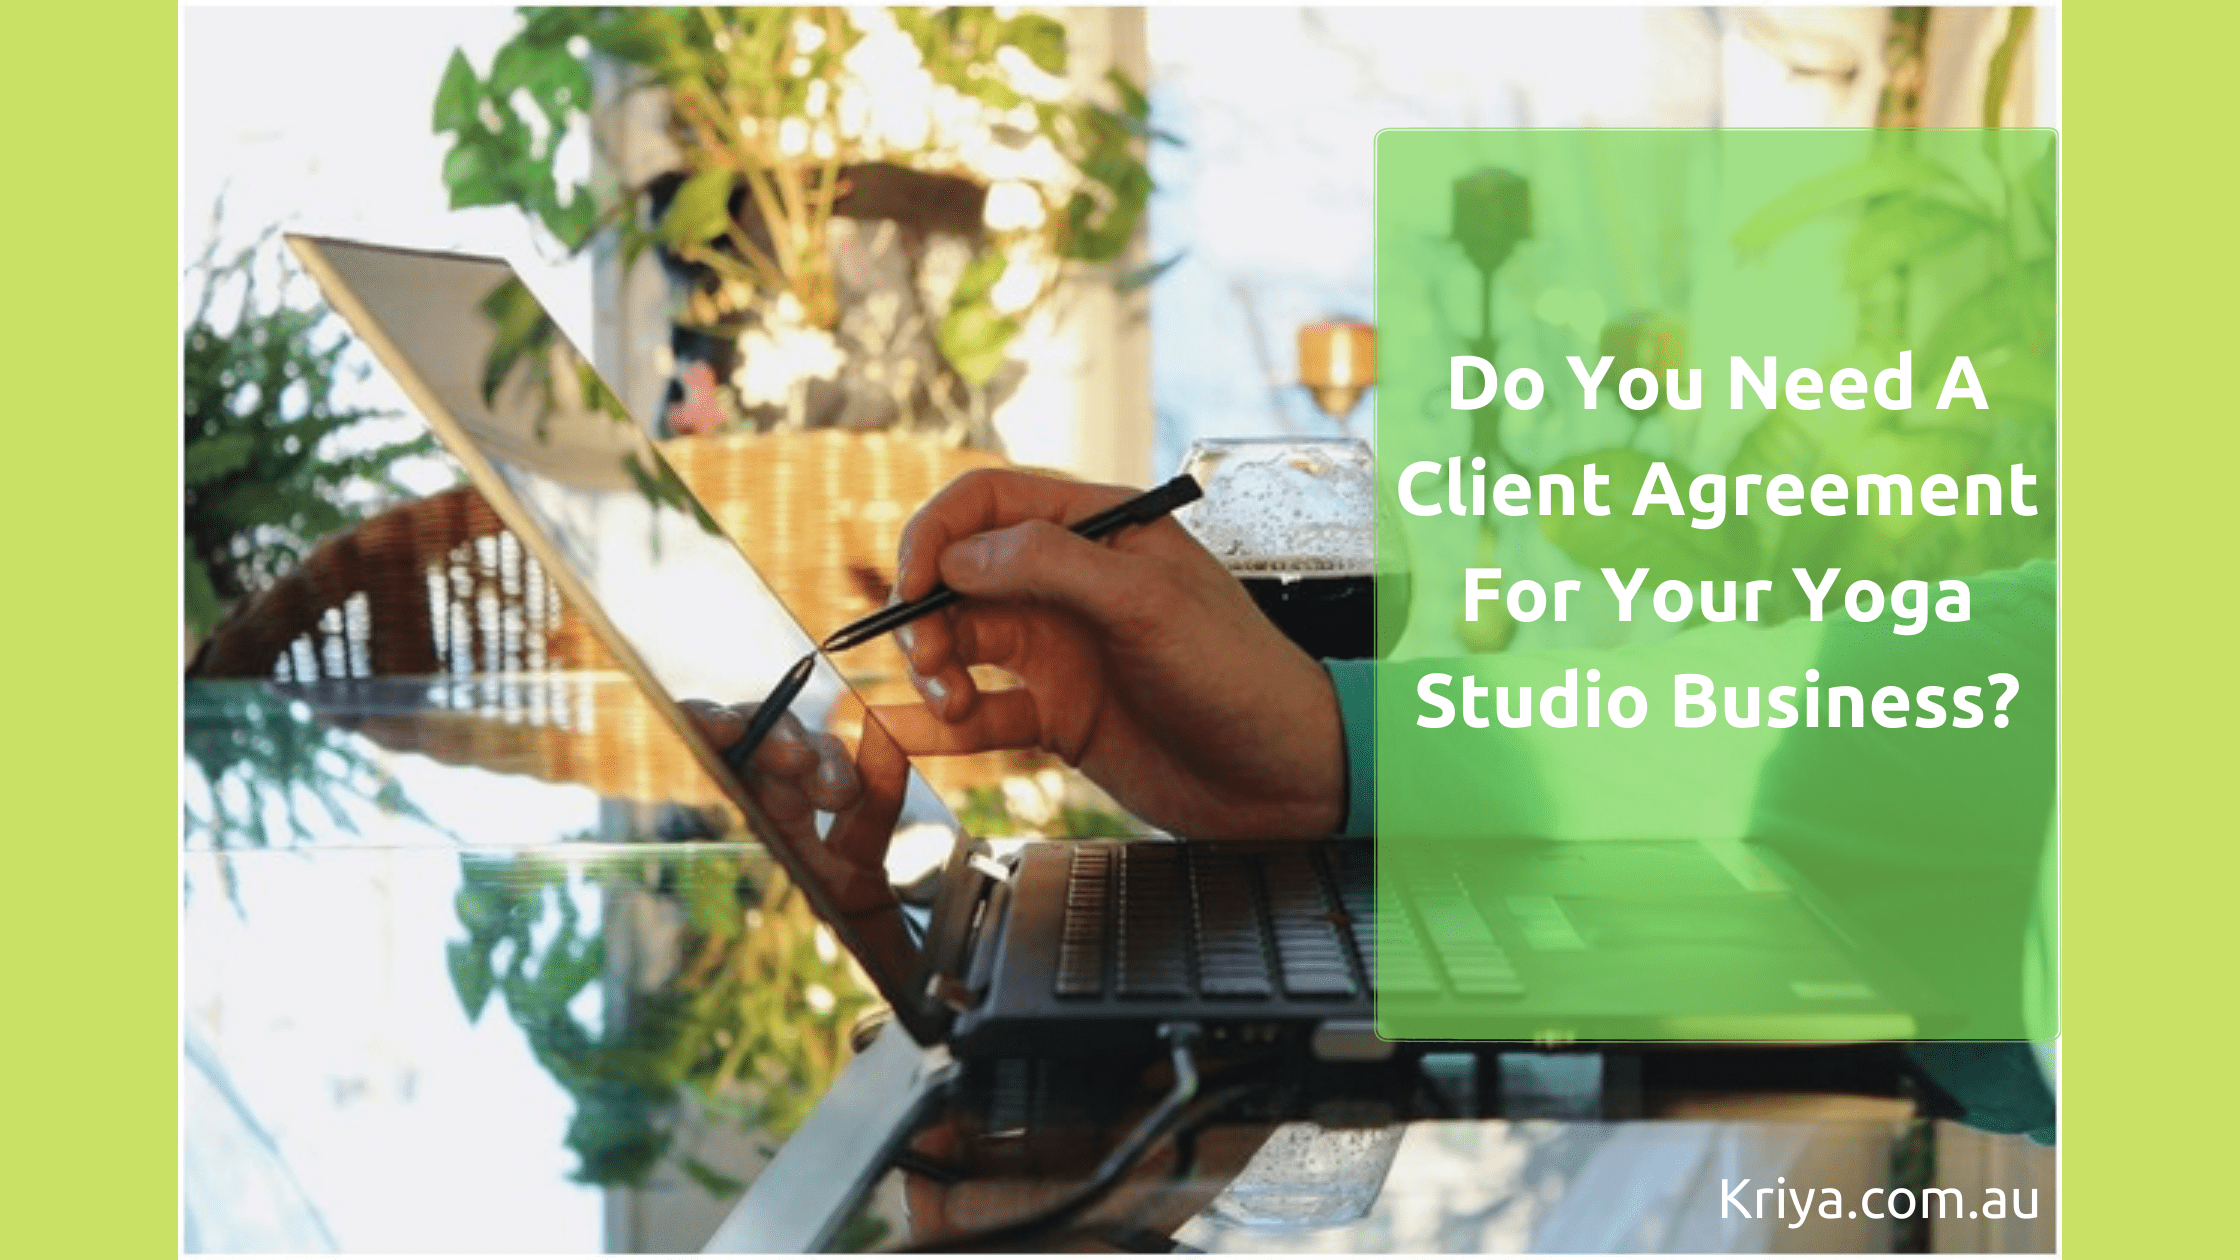 Do you need a client agreement for your yoga studio business_